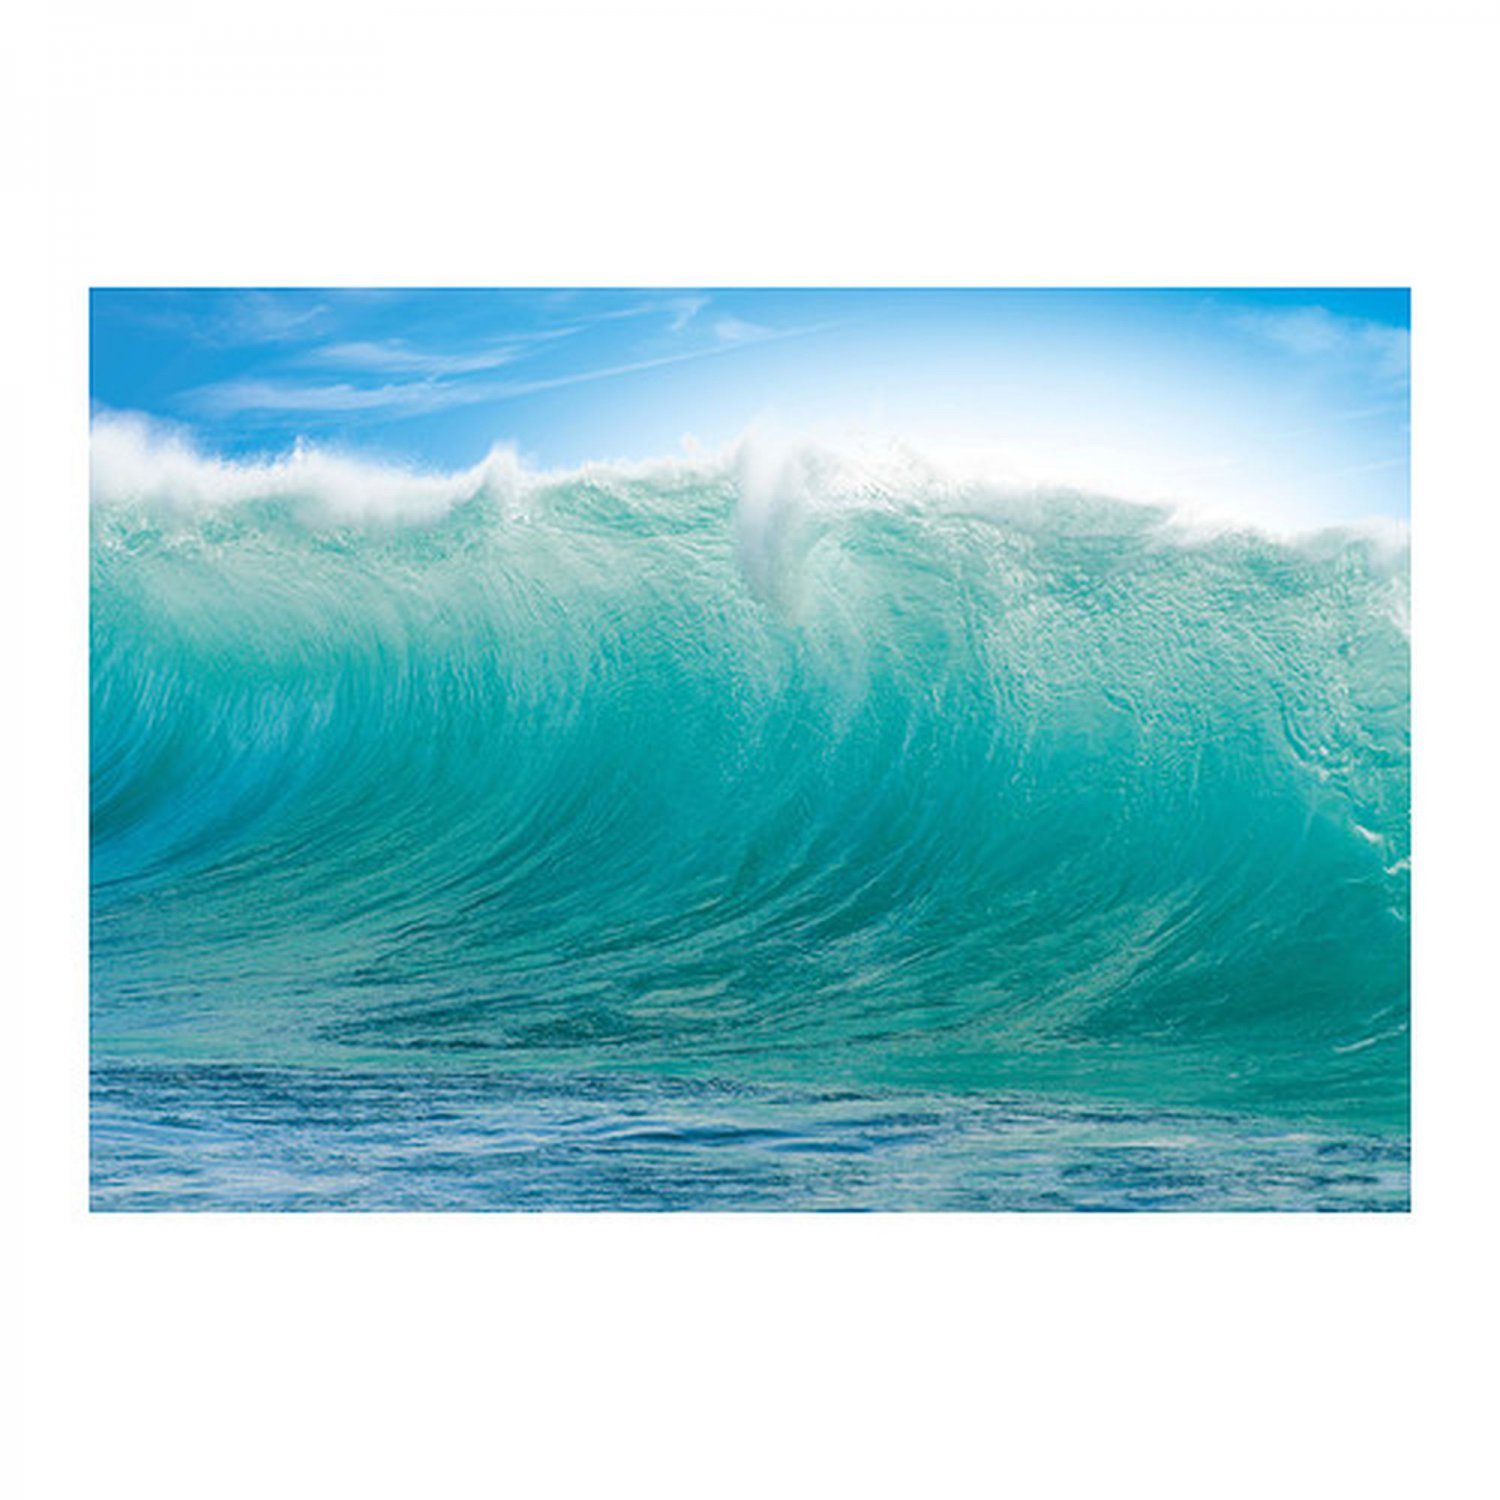 ikea premiar hawaii waves blue wall art print huge surfer